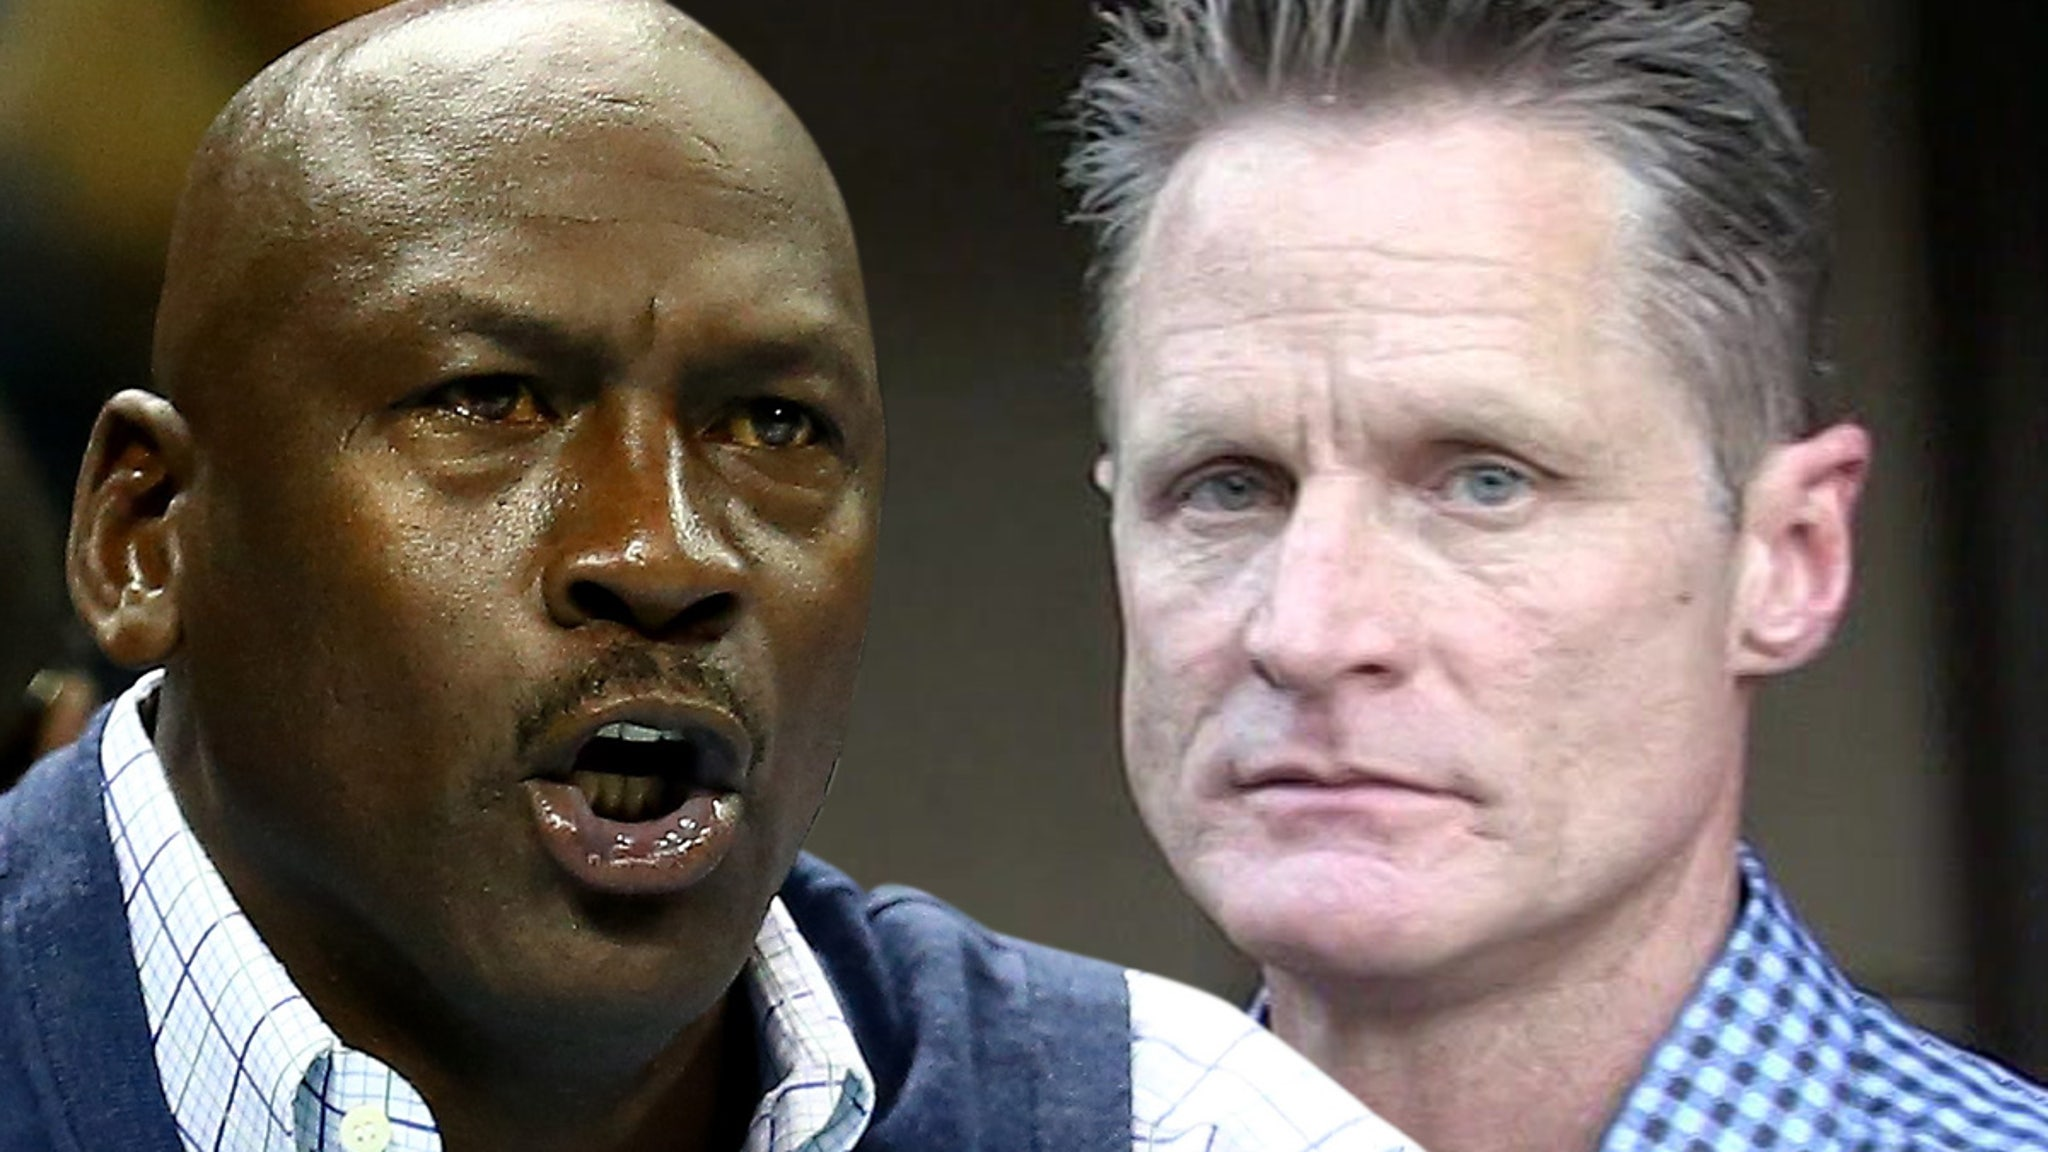 Michael Jordan Says He Punched Steve Kerr 'In The F***ing Eye' In '95 Fight